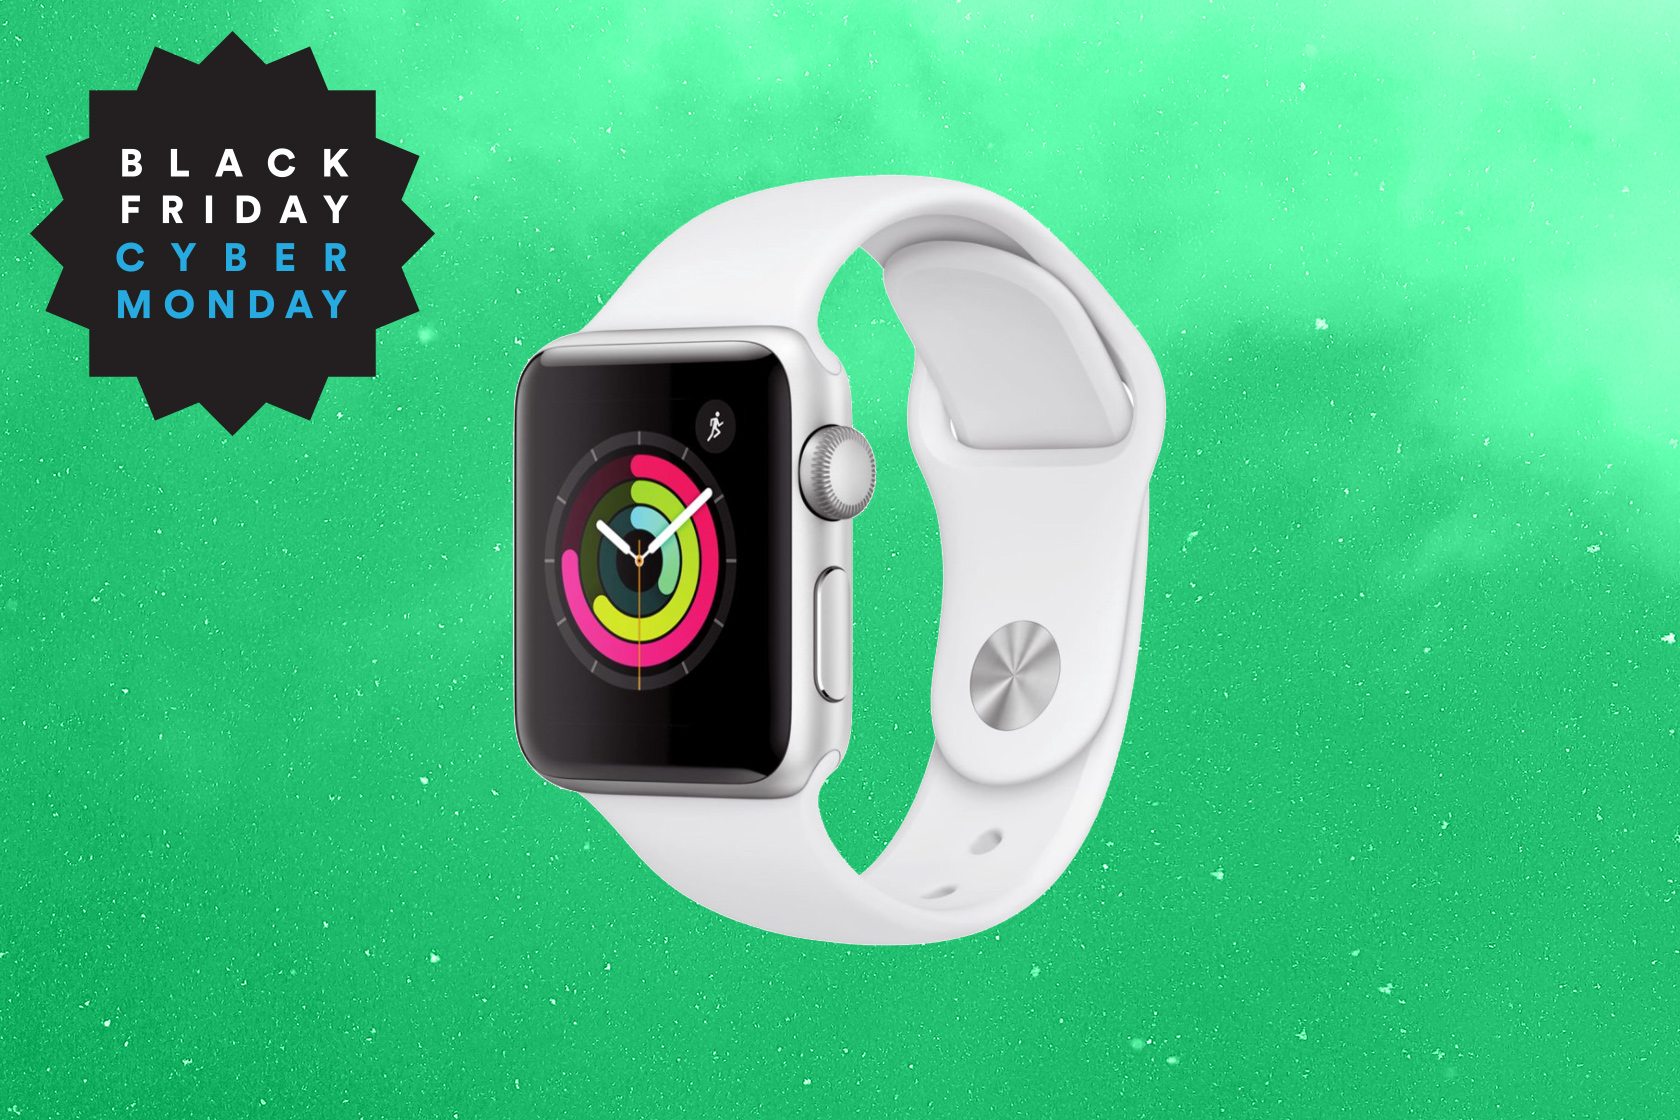 Get an Apple Watch for only $119 this Black Friday at Walmart